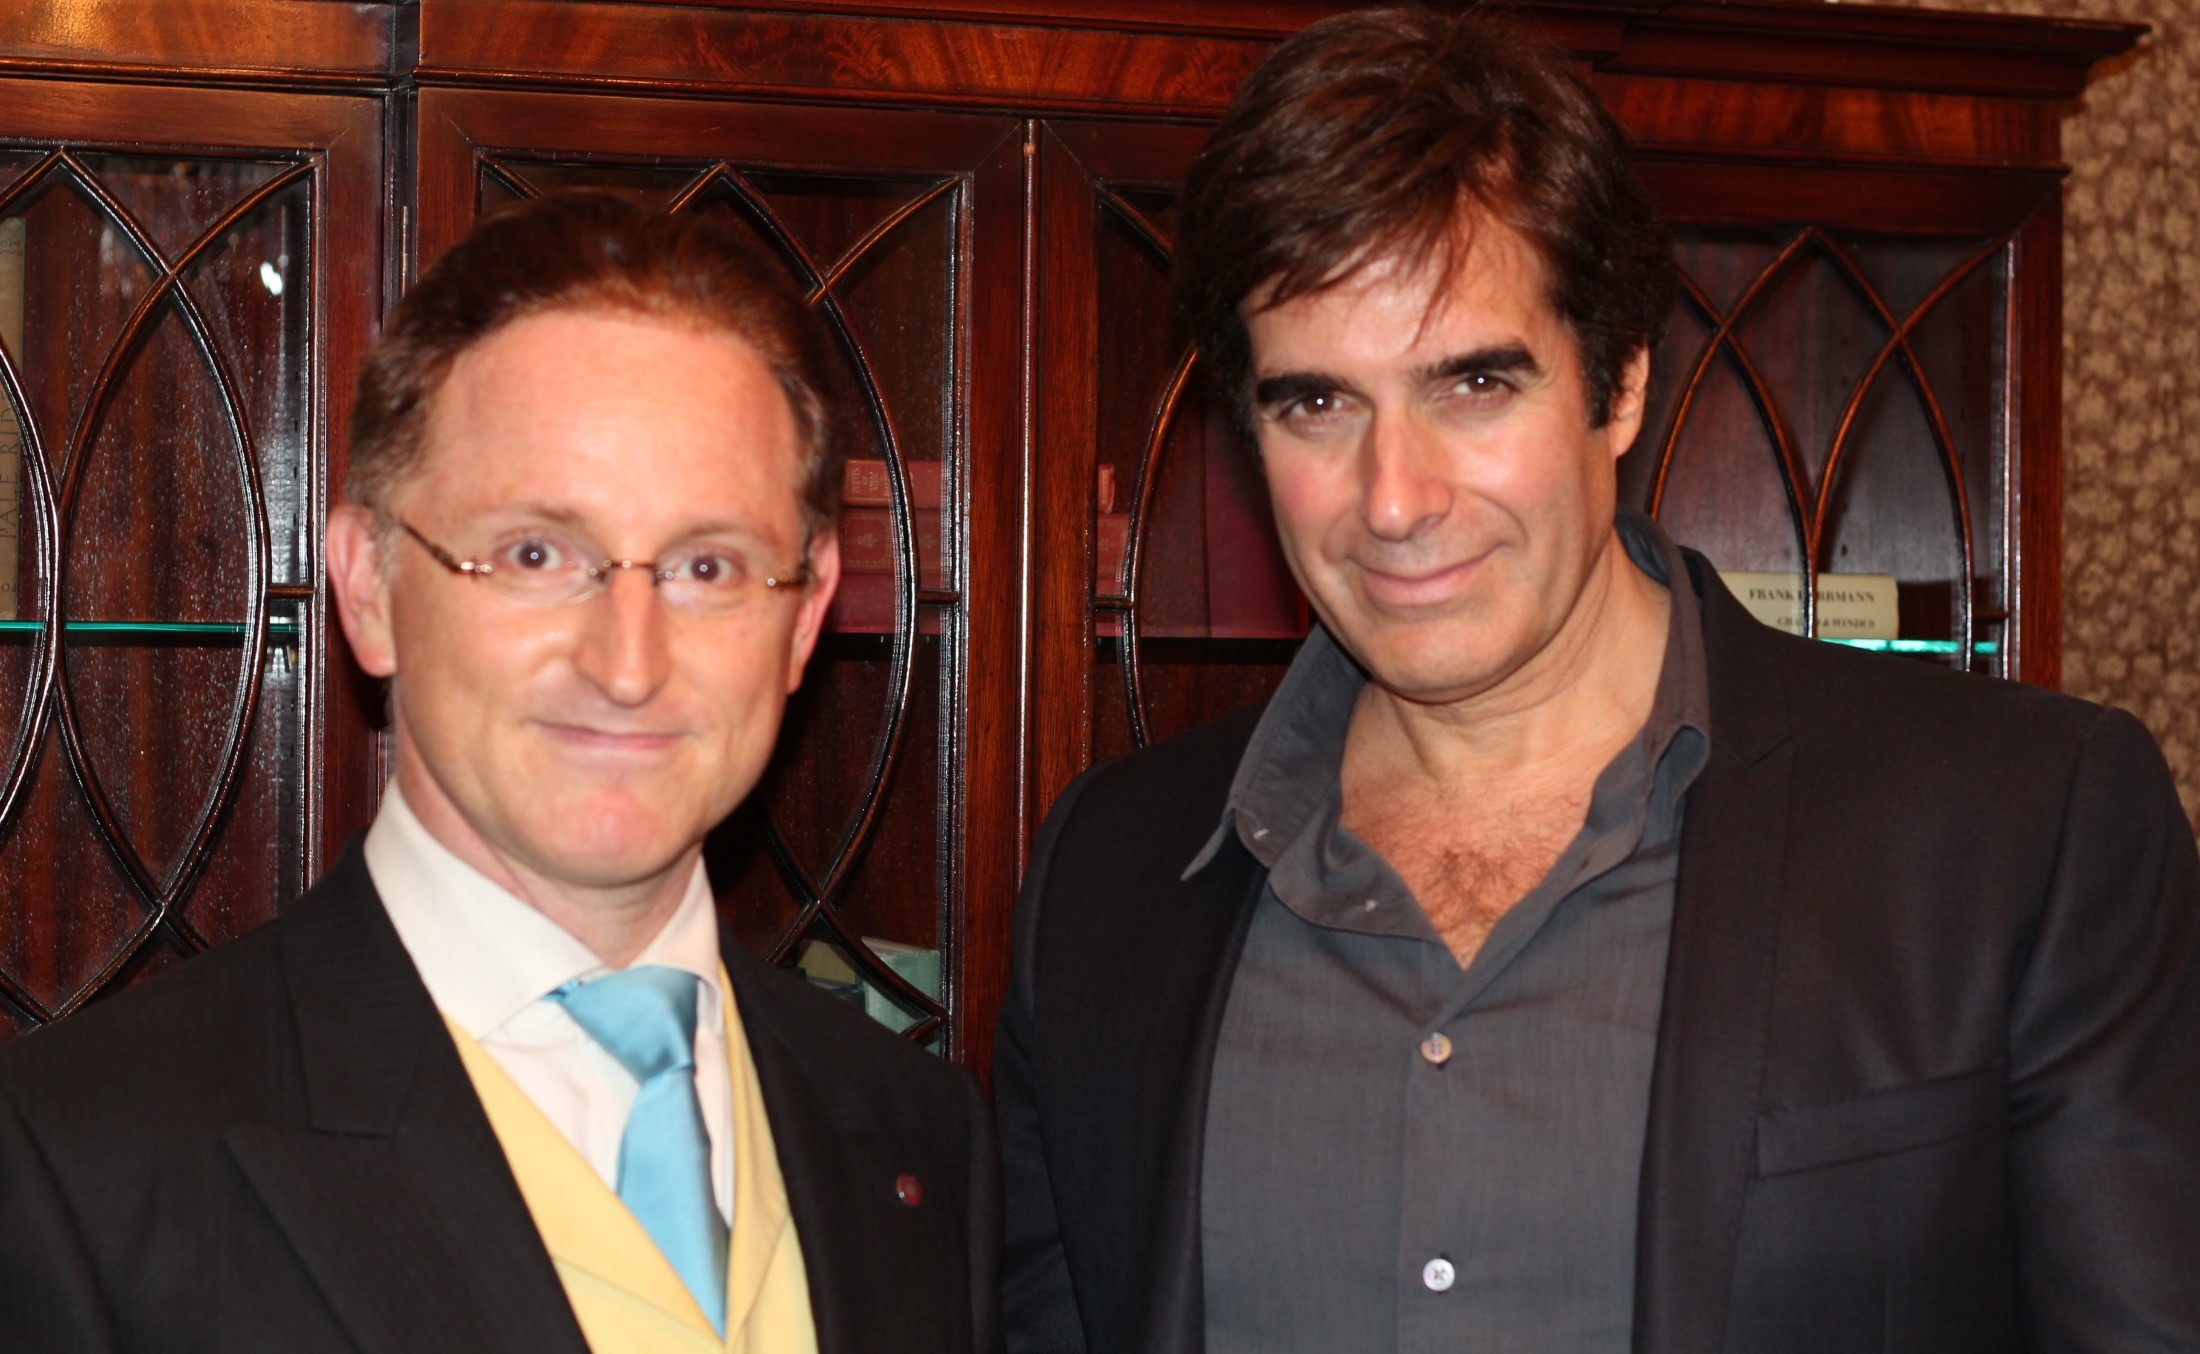 David copperfield calls chamber magic a masterful performance may 28 2012 m4hsunfo